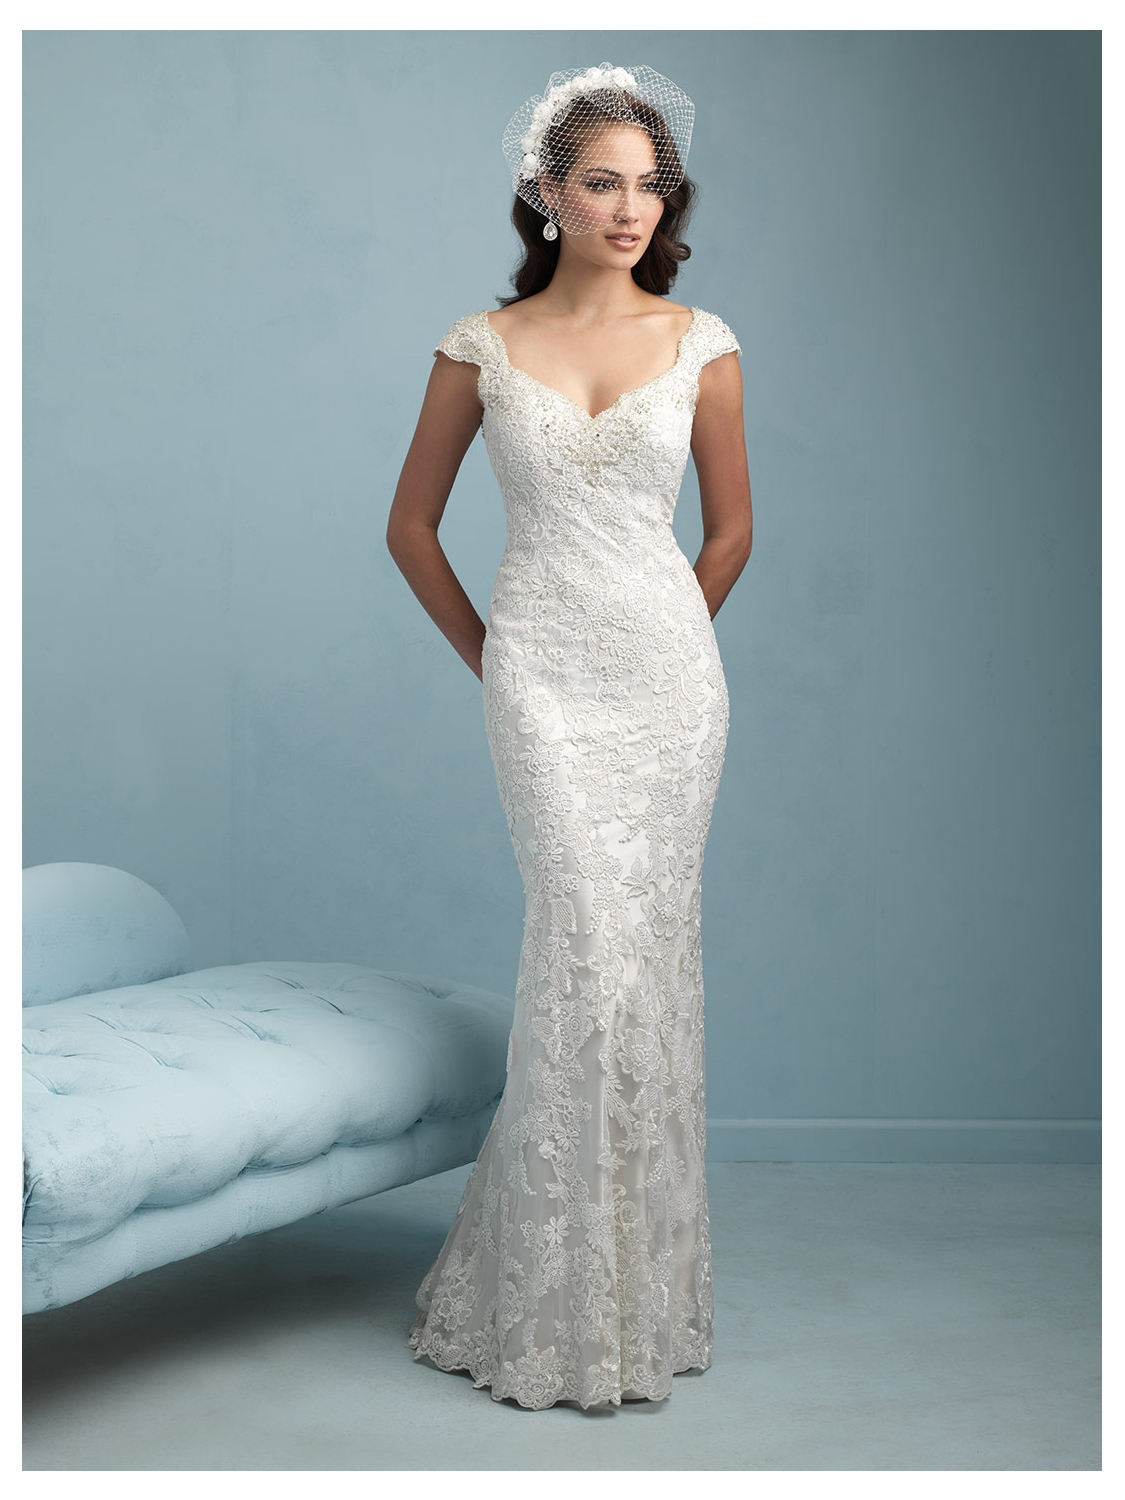 Allure Bridals Wedding Dress Style 9212 | House of Brides